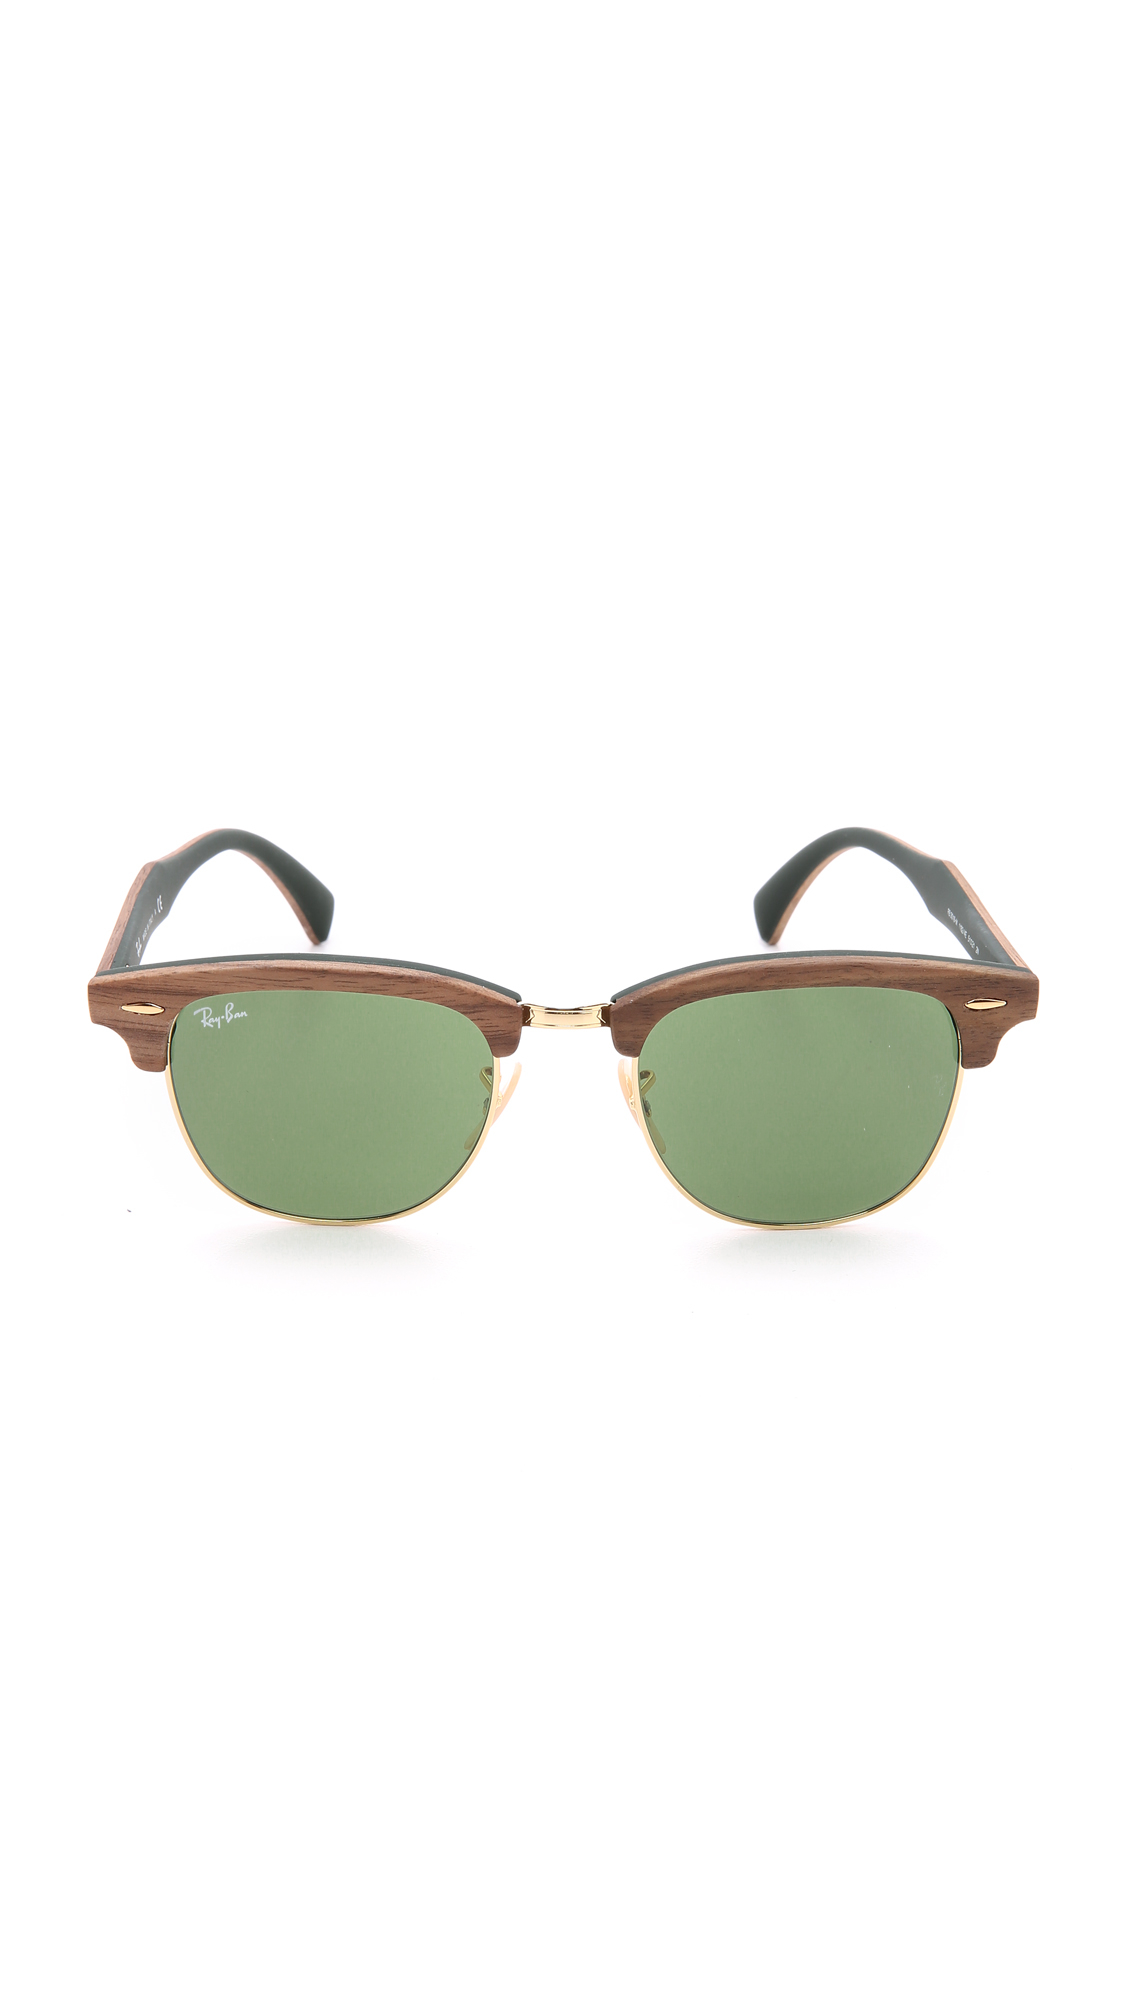 ray ban clubmaster 50mm  Ray-ban Clubmaster Wood Sunglasses in Brown